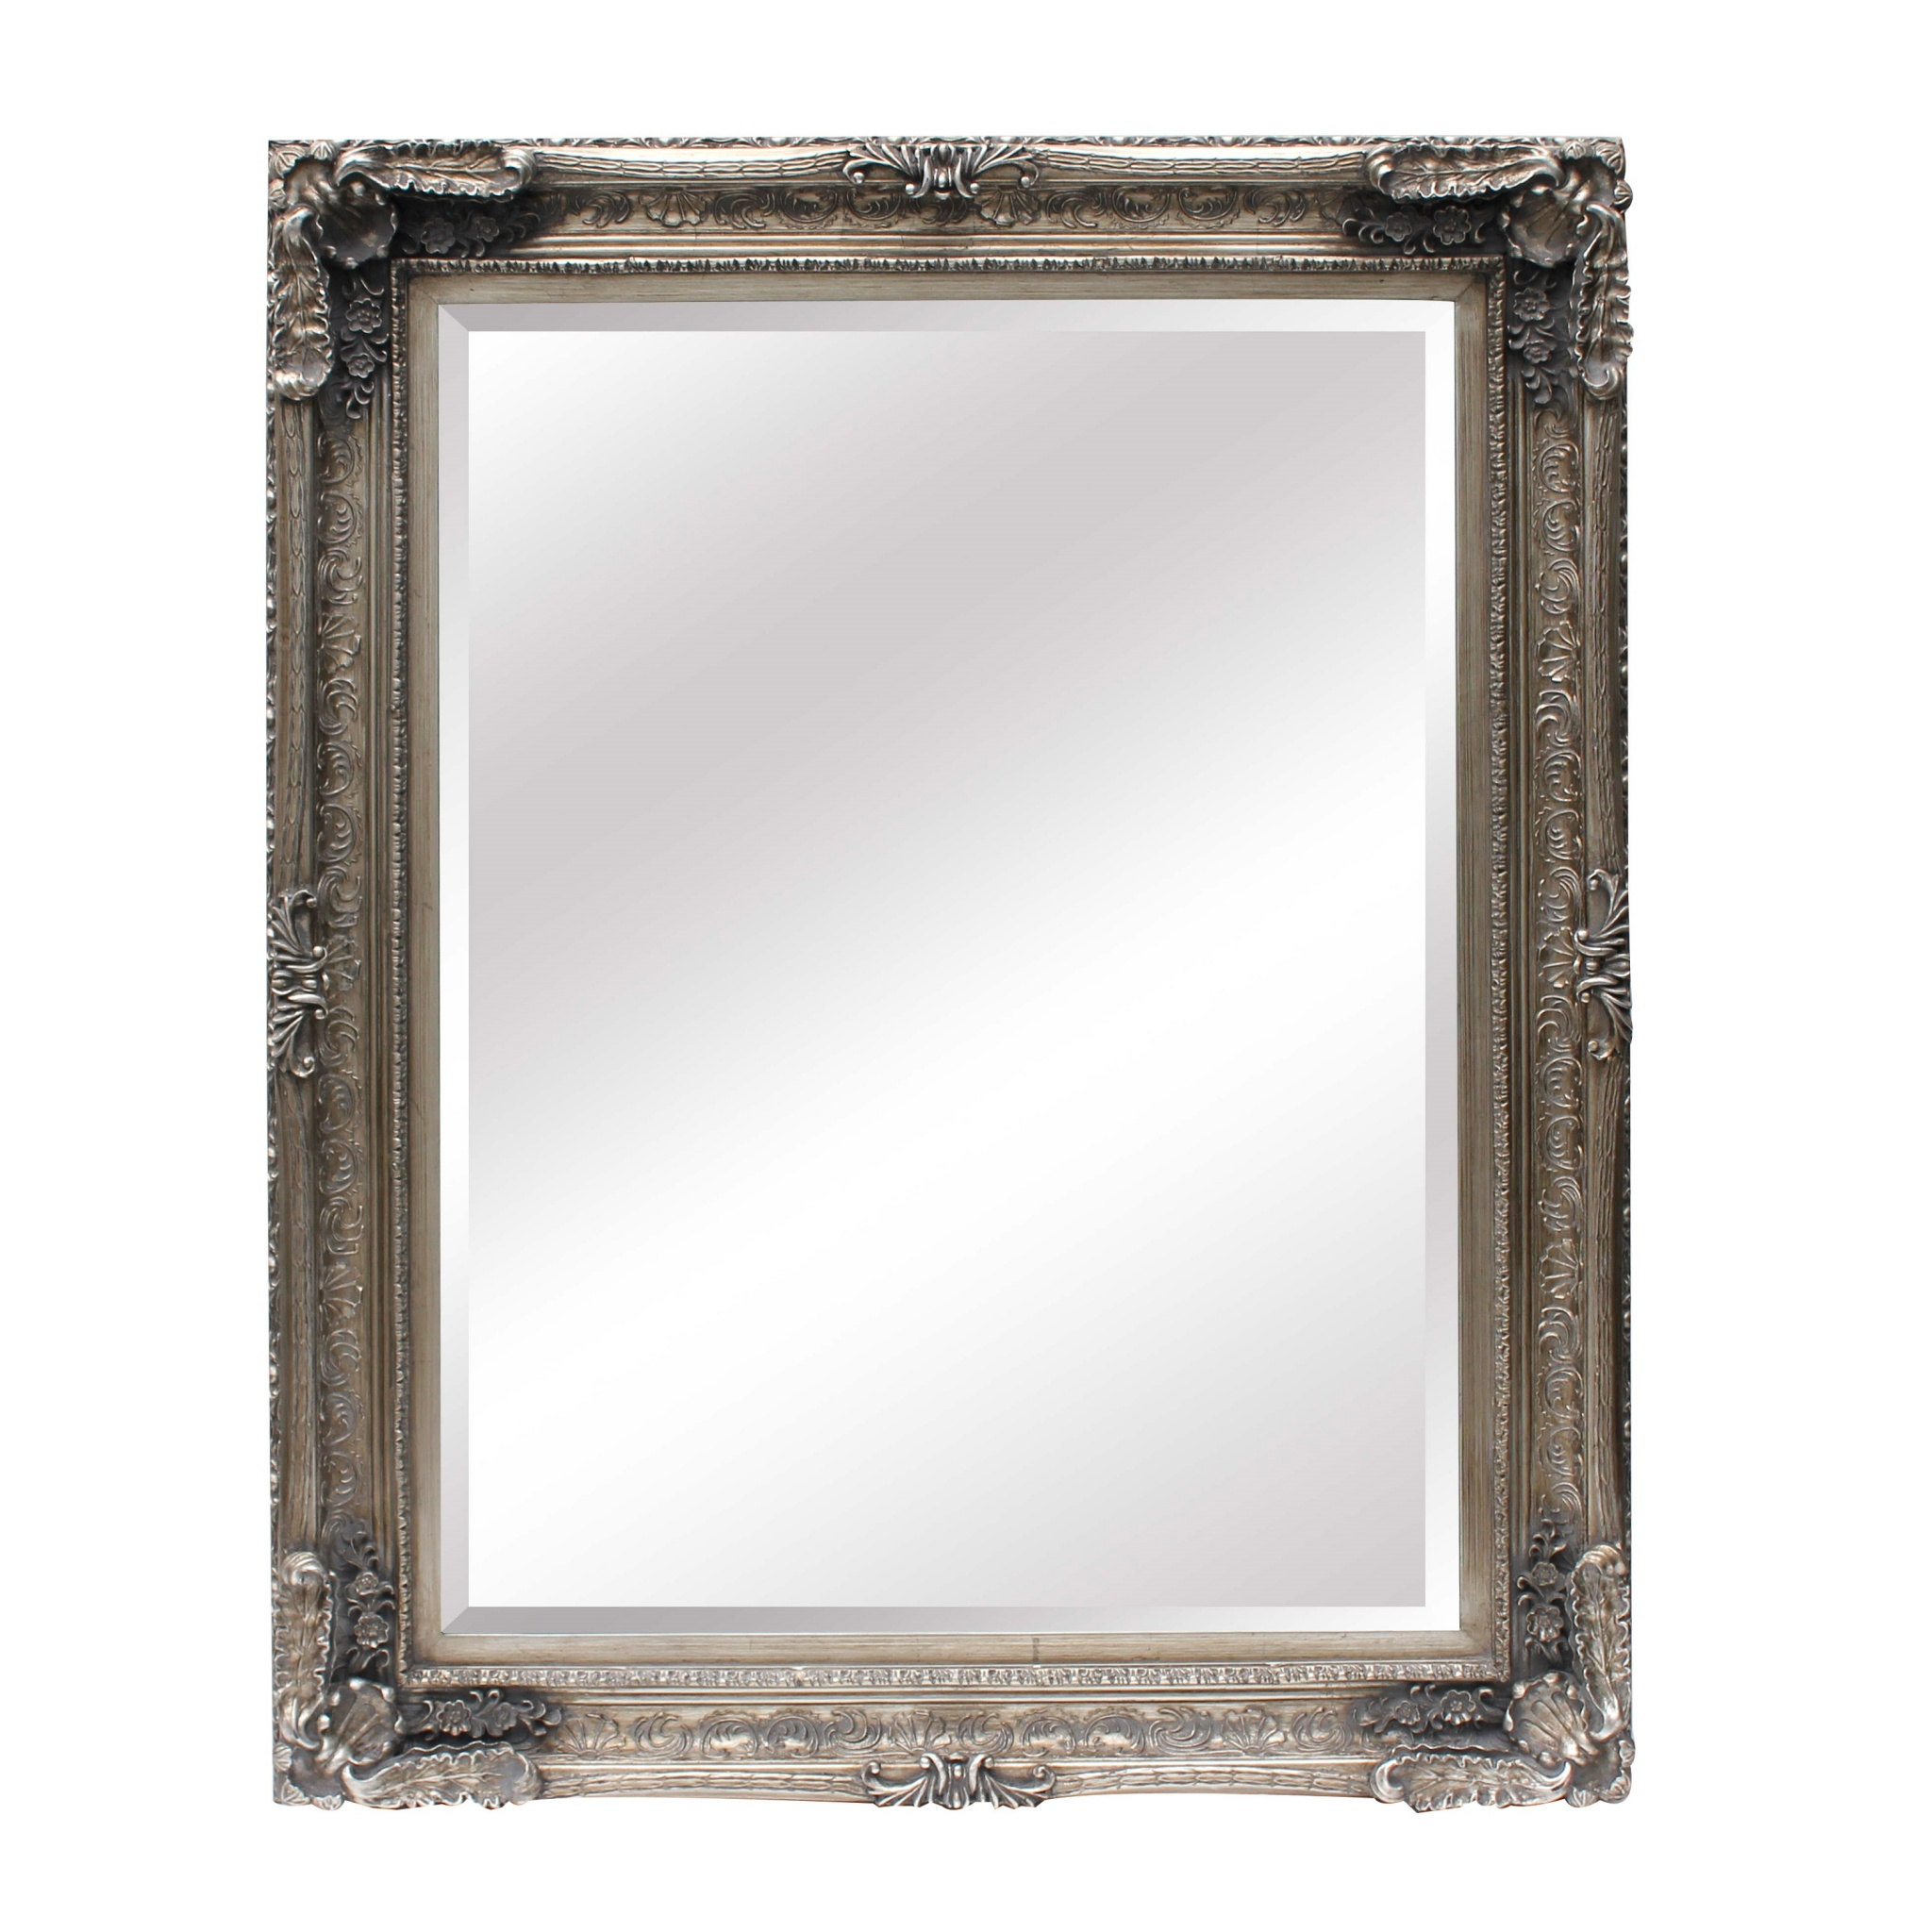 Maddelena Large Silver Mirror Furniture La Maison Chic